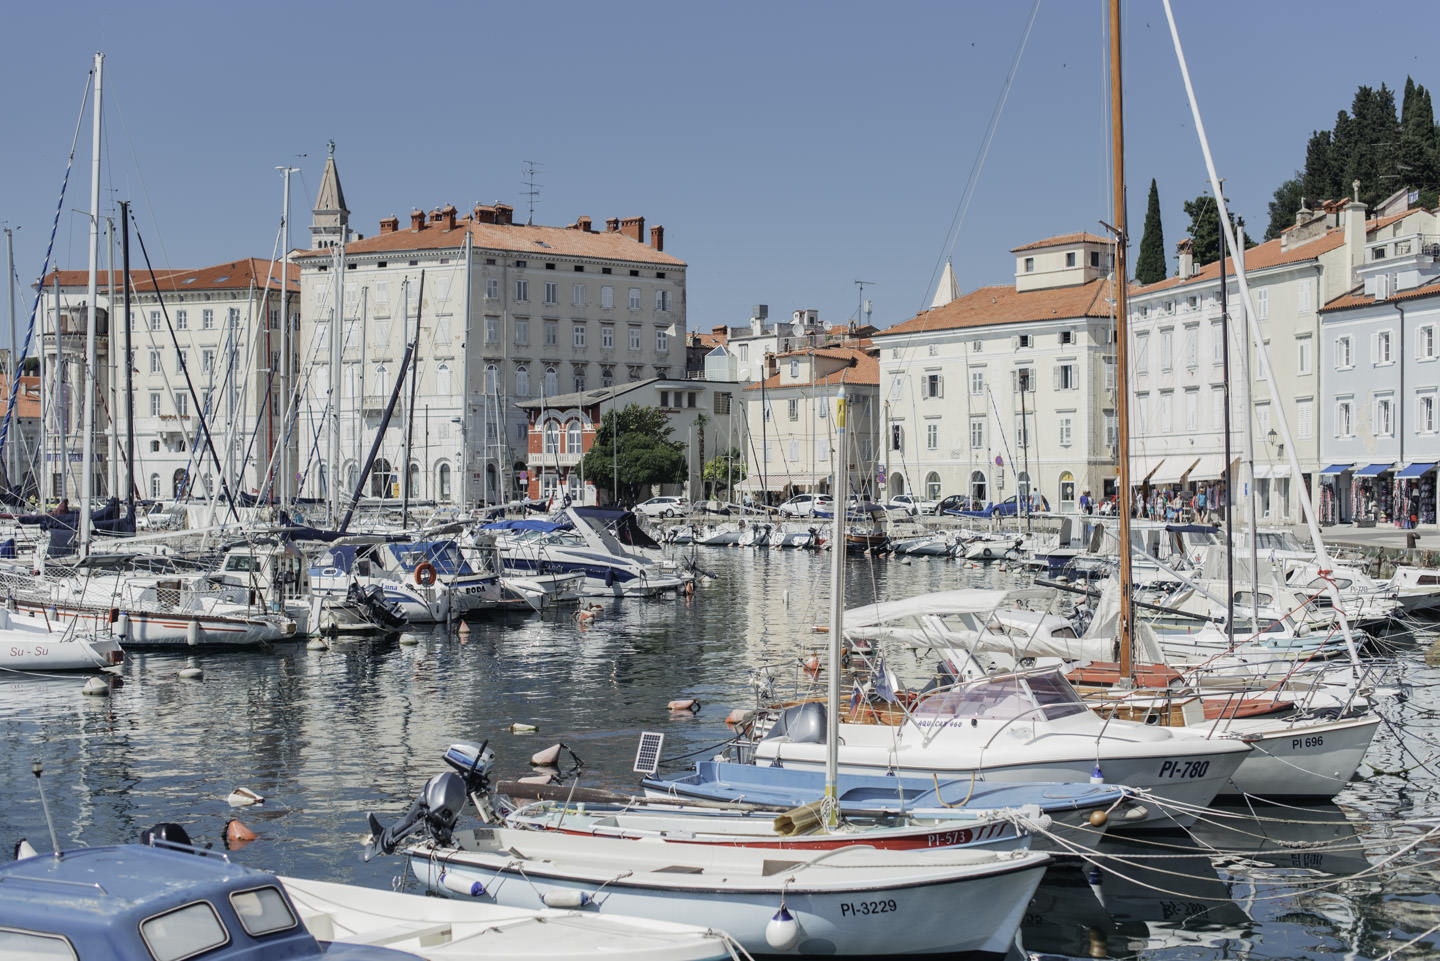 Blog-Mode-And-The-City-Lifestye-Voyage-a-Piran-Slovenie-18